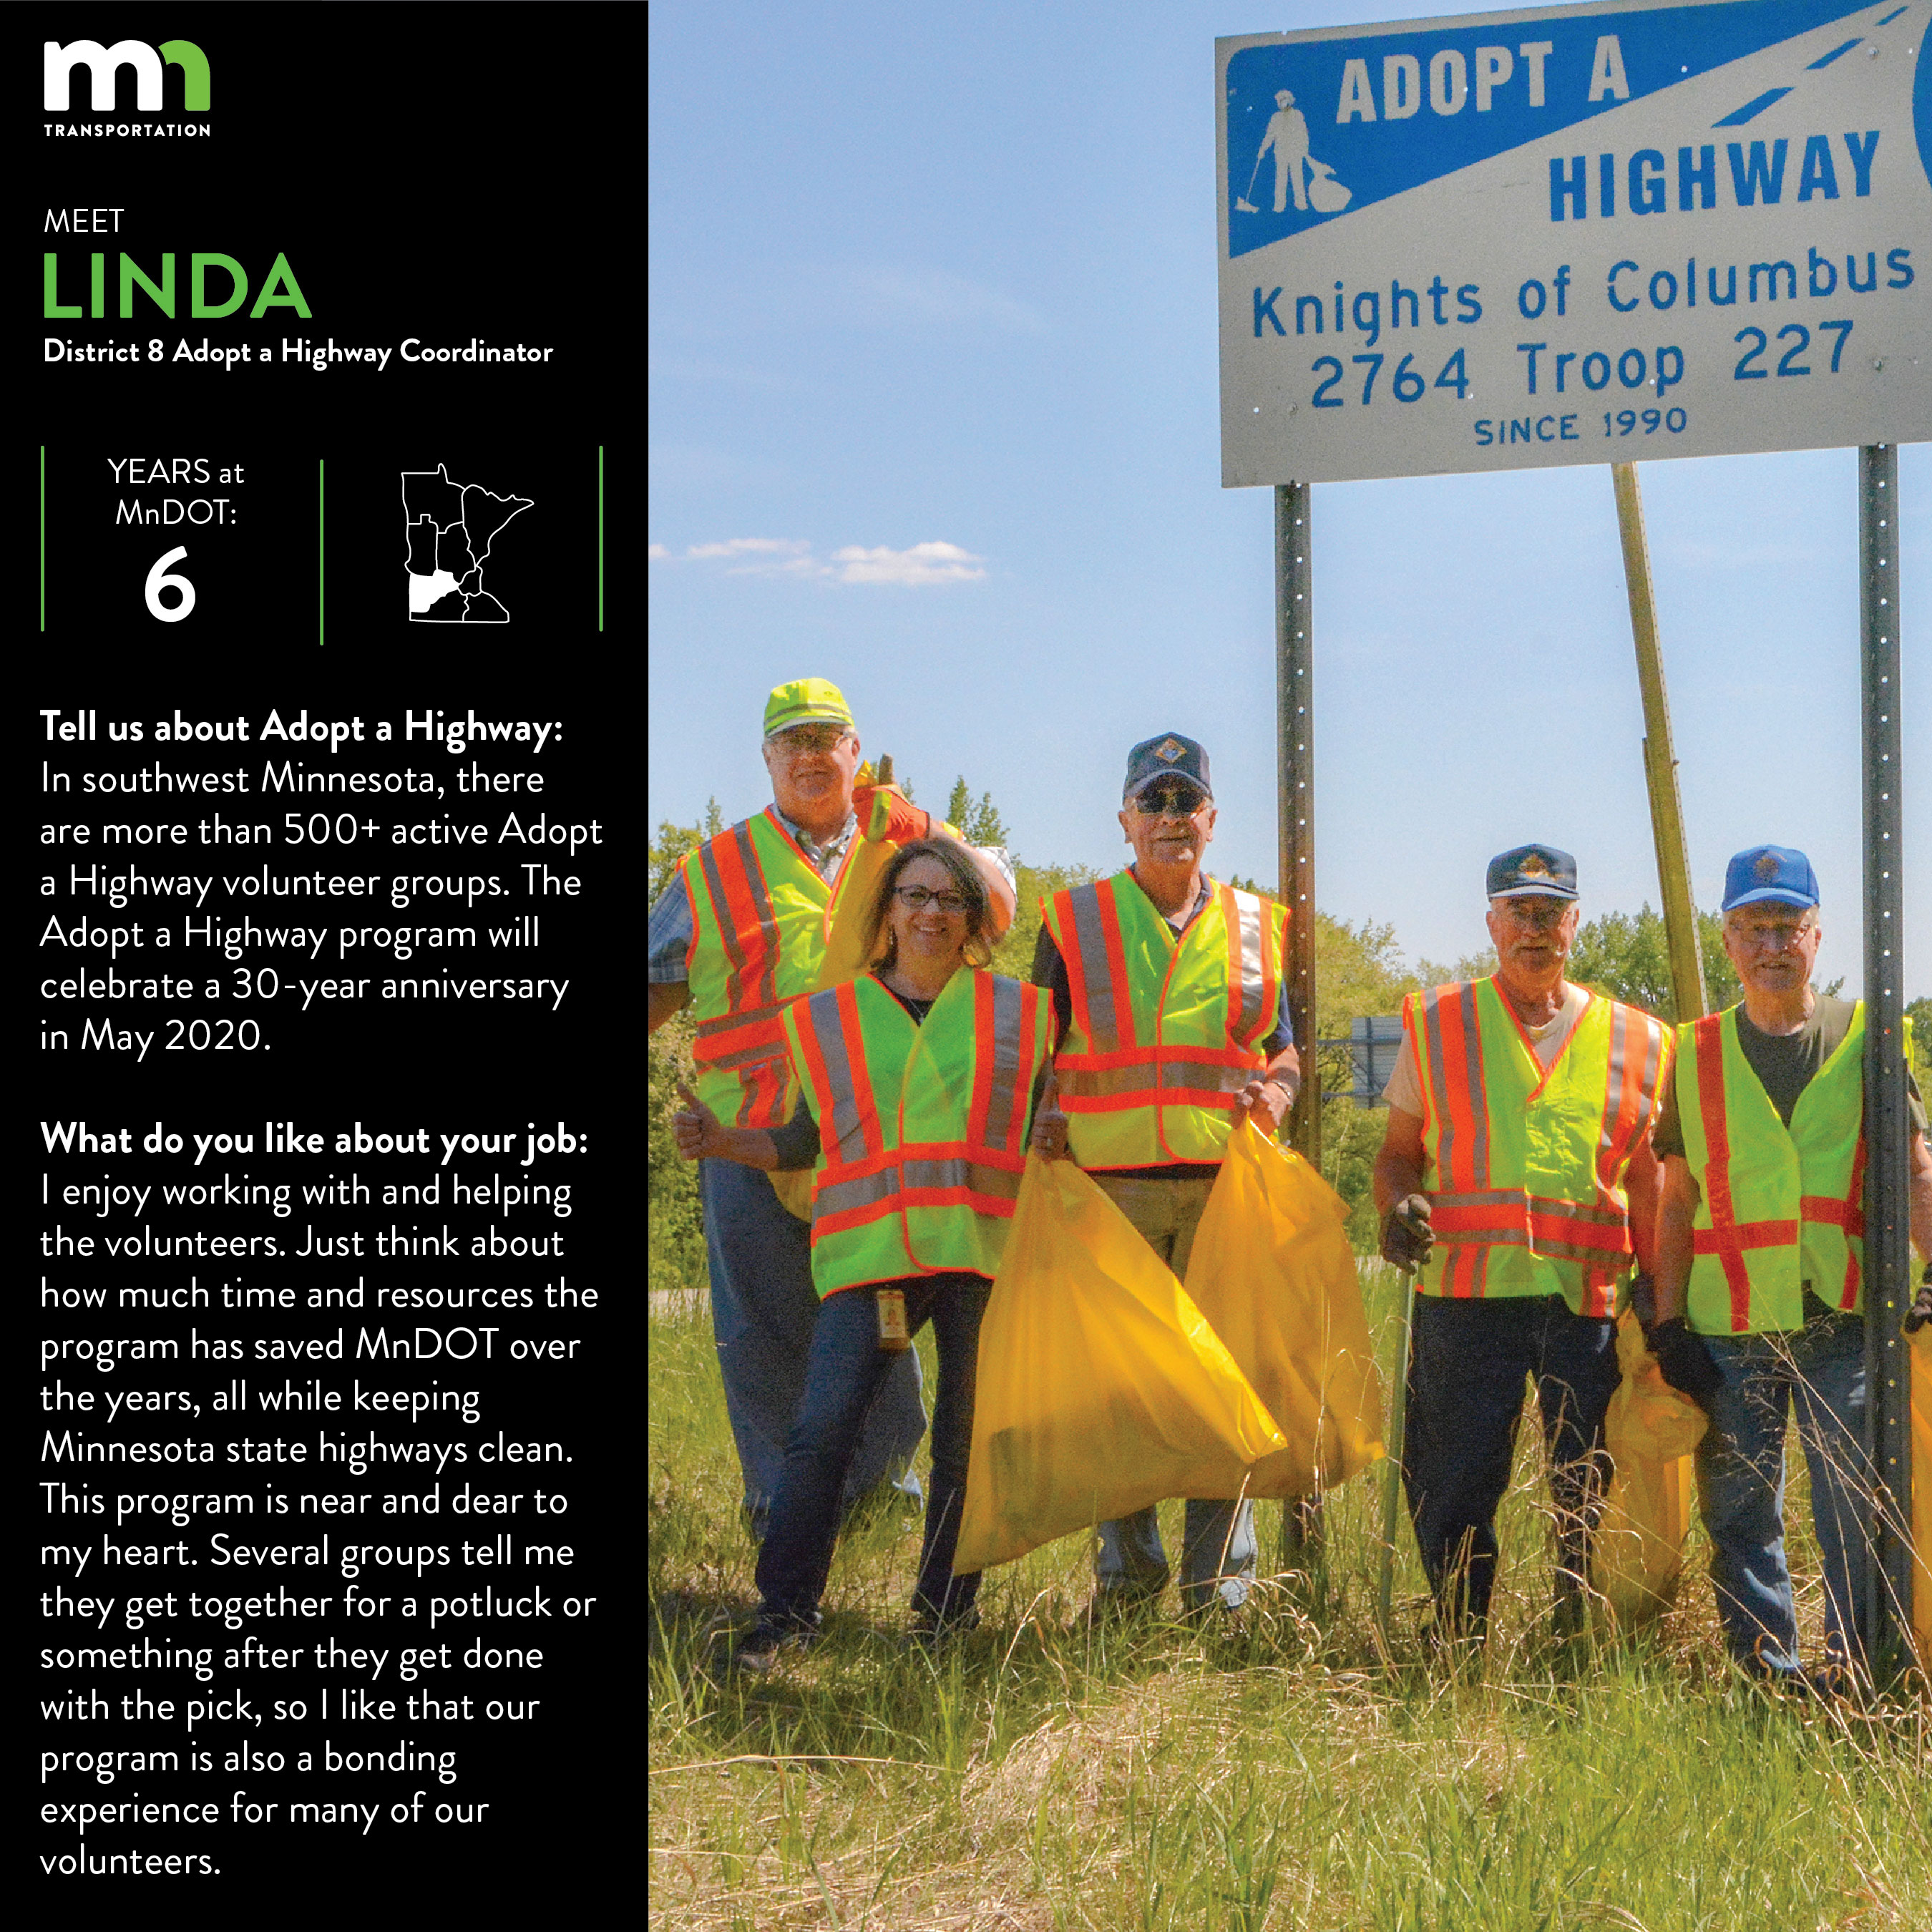 Linda Vandendriessche is a District 8 Adopt a Highway Coordinator. She says In D8, there are more than 530 active Adopt a Highway volunteer groups in 12 counties. I enjoy working with these volunteers and helping them clear. The Adopt a Highway program will celebrate 30 year anniversary in May 2020. Just think about how much time and money the program has saved MnDOT over those years while keeping Minnesota state highways clean. This program is near and dear to my heart. In addition to working with the Adopt a Highway program, I am also the Damage Restitution Coordinator in D8, I enter D8 construction projects into our 511mn traveler information system and serve as the front desk receptionist.